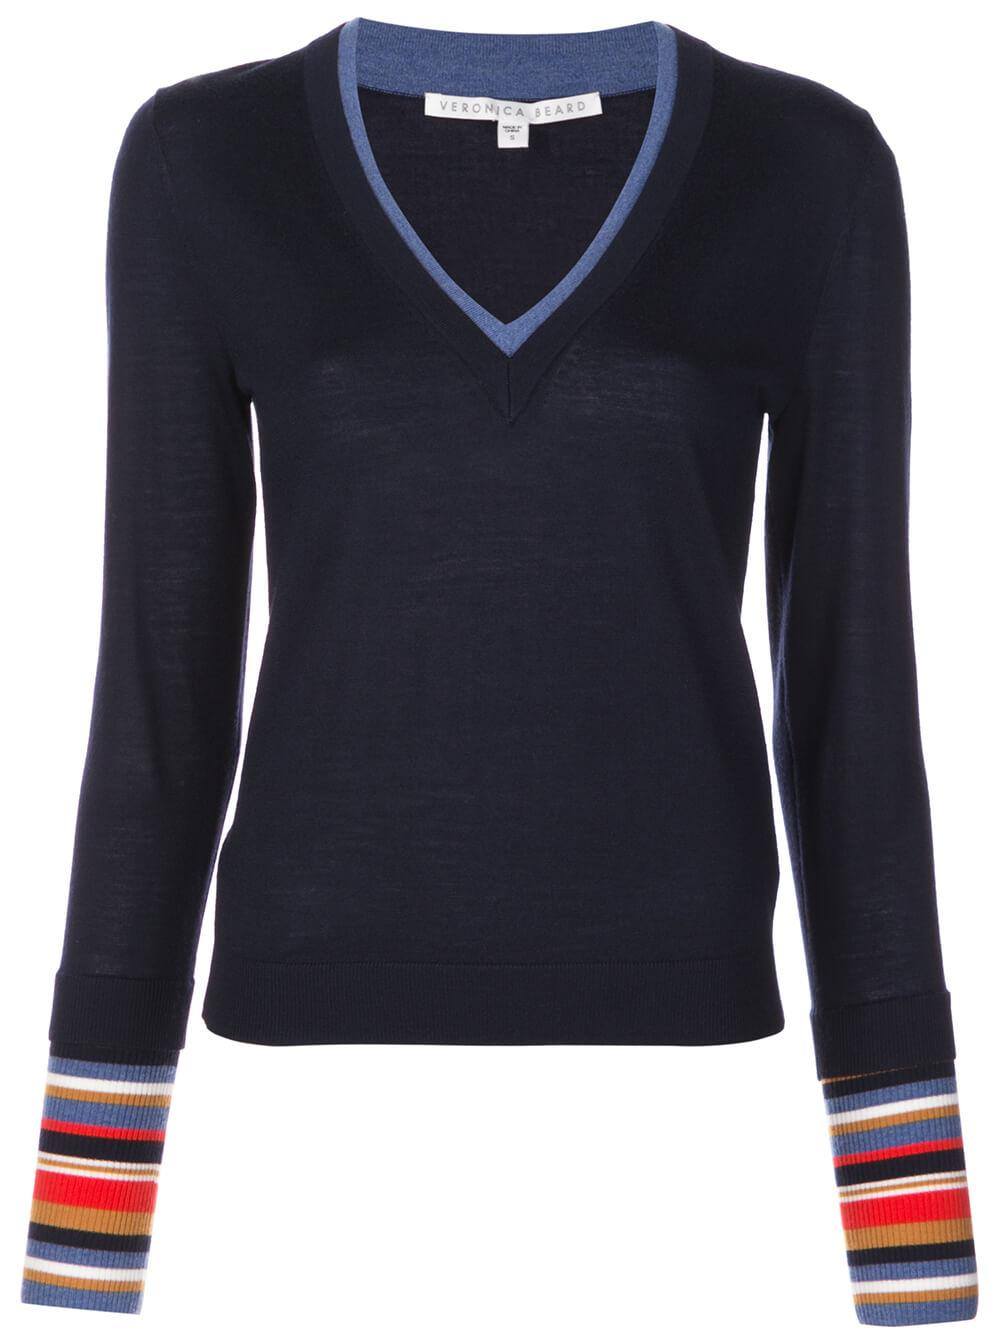 Avory Long Sleeve V-Neck Sweater